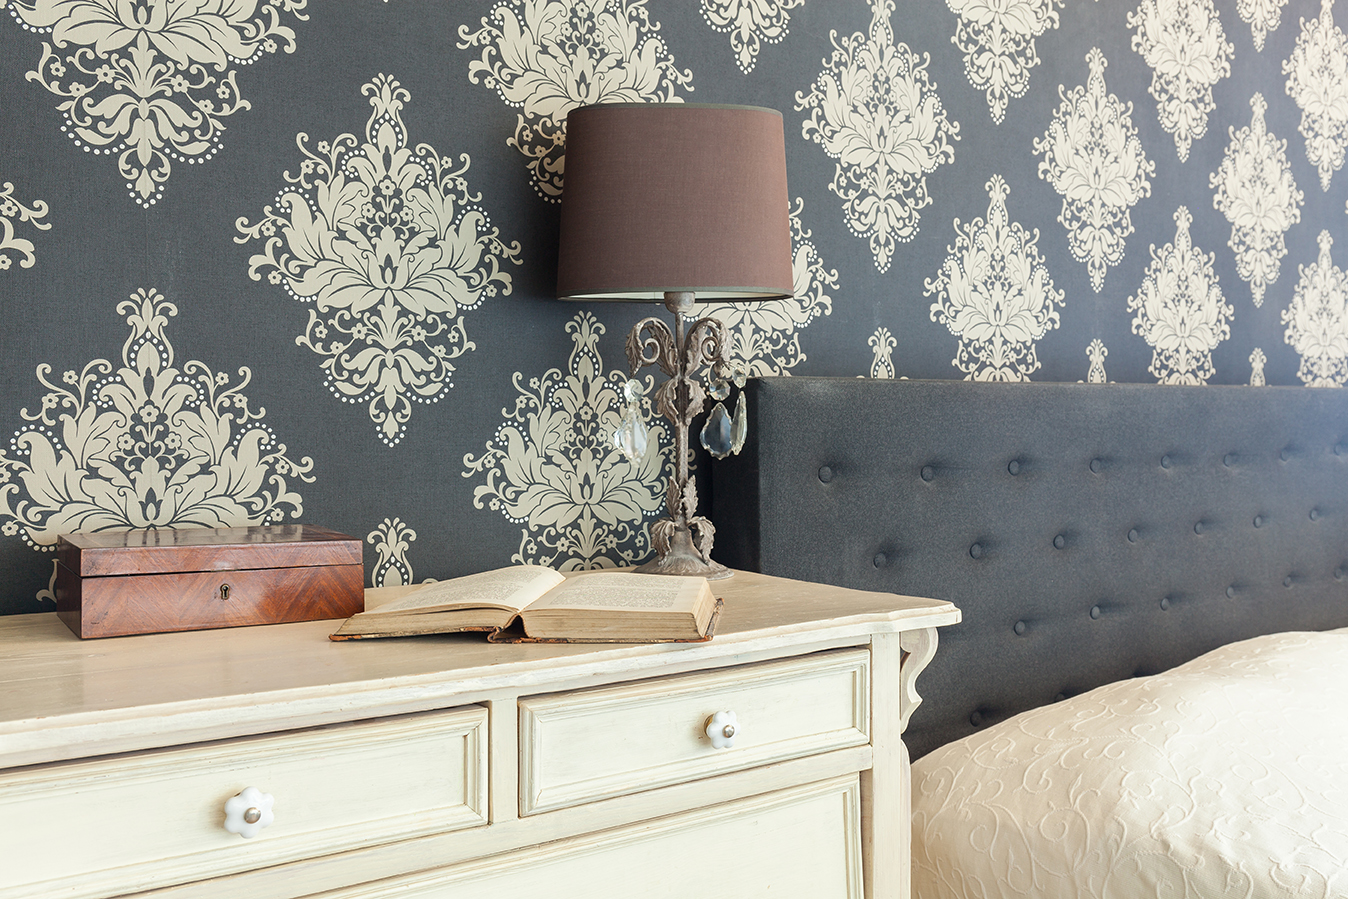 Spruce up your property ahead of spring - wallpaper